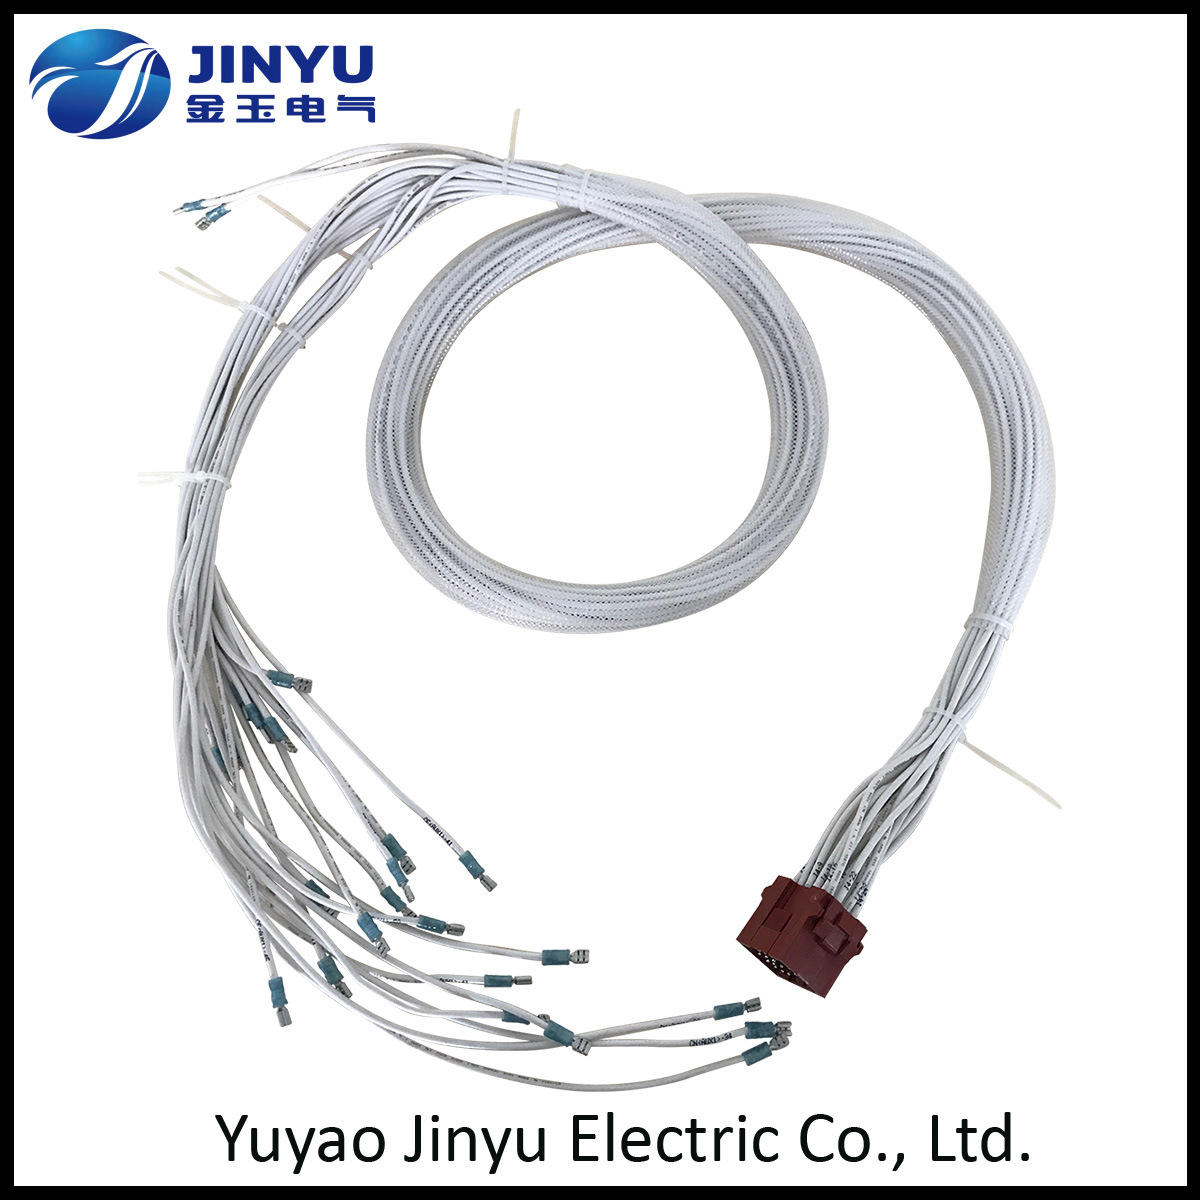 China Wire Harness Assembly Use in Automobile Equipment - China Wiring  Harness, Cable Assemble